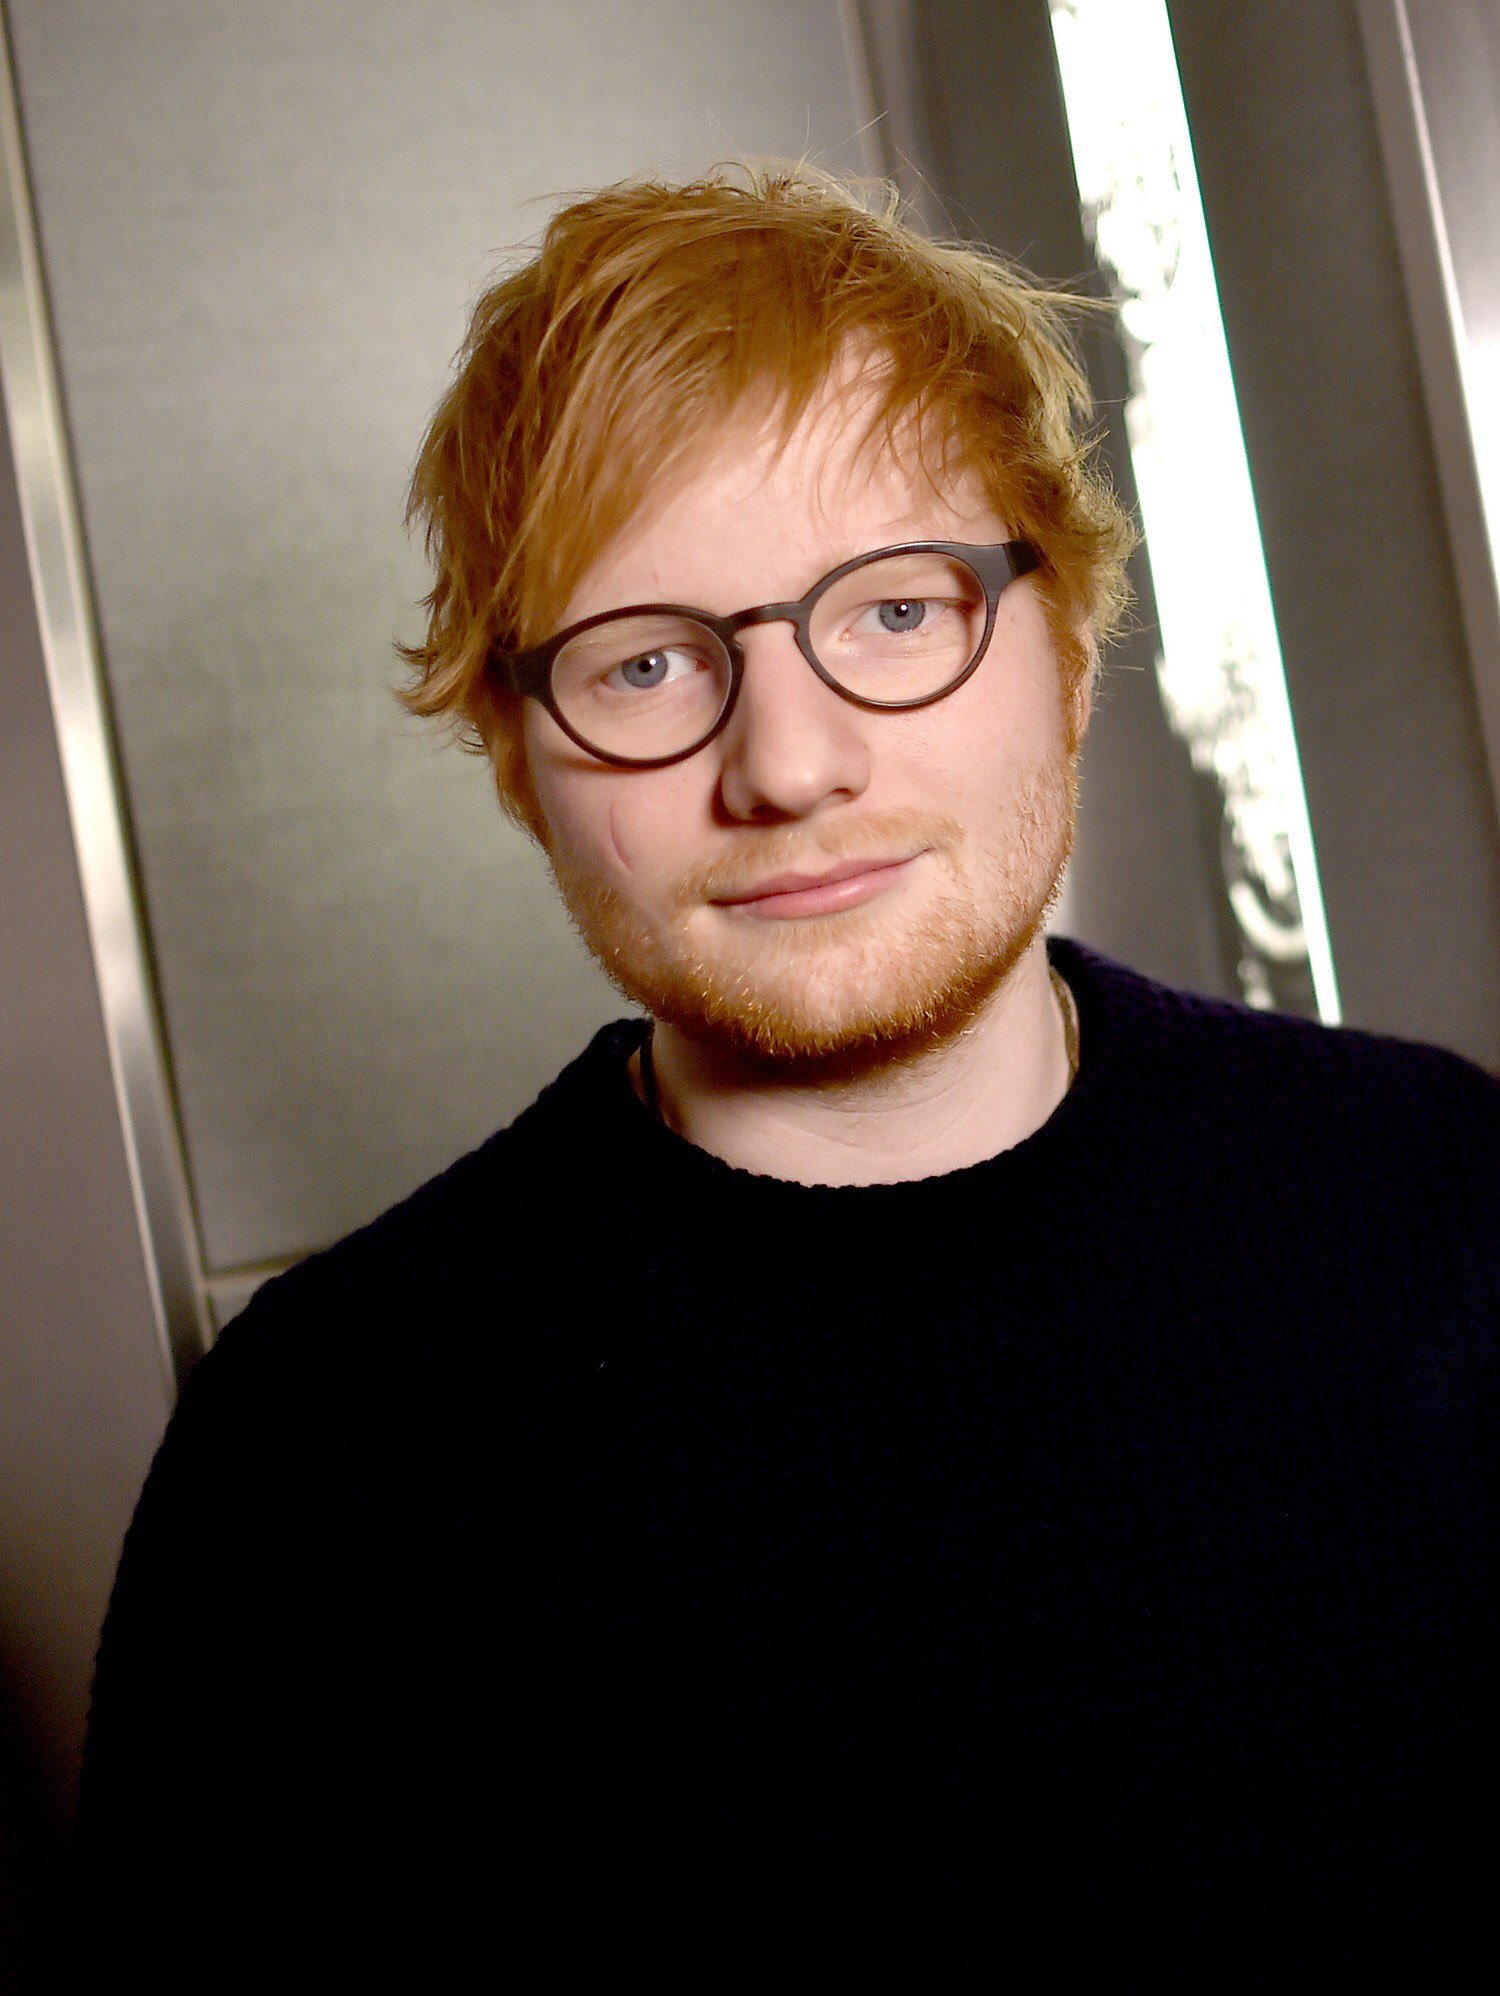 Happy birthday ed sheeran your music inspires us all